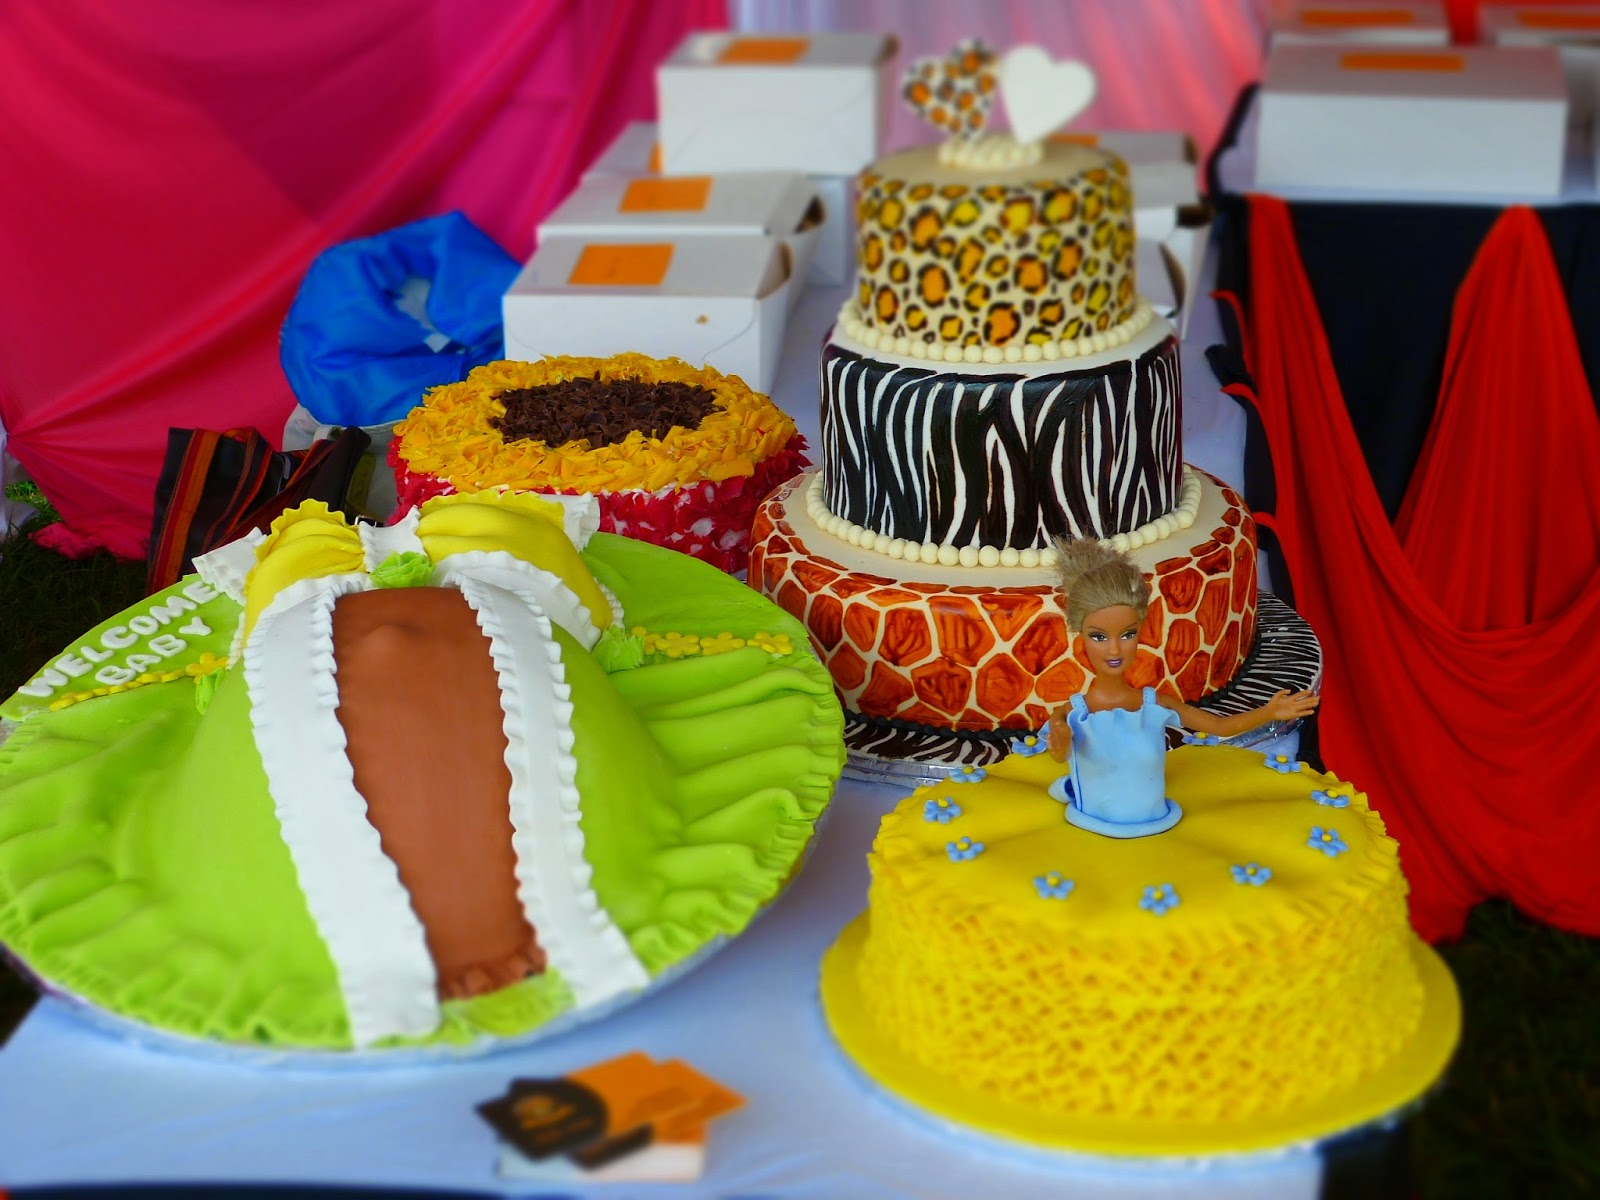 Cake Art Festival Nairobi : Renewable Energy Solutions Kenya: Cookswell Jikos and the ...